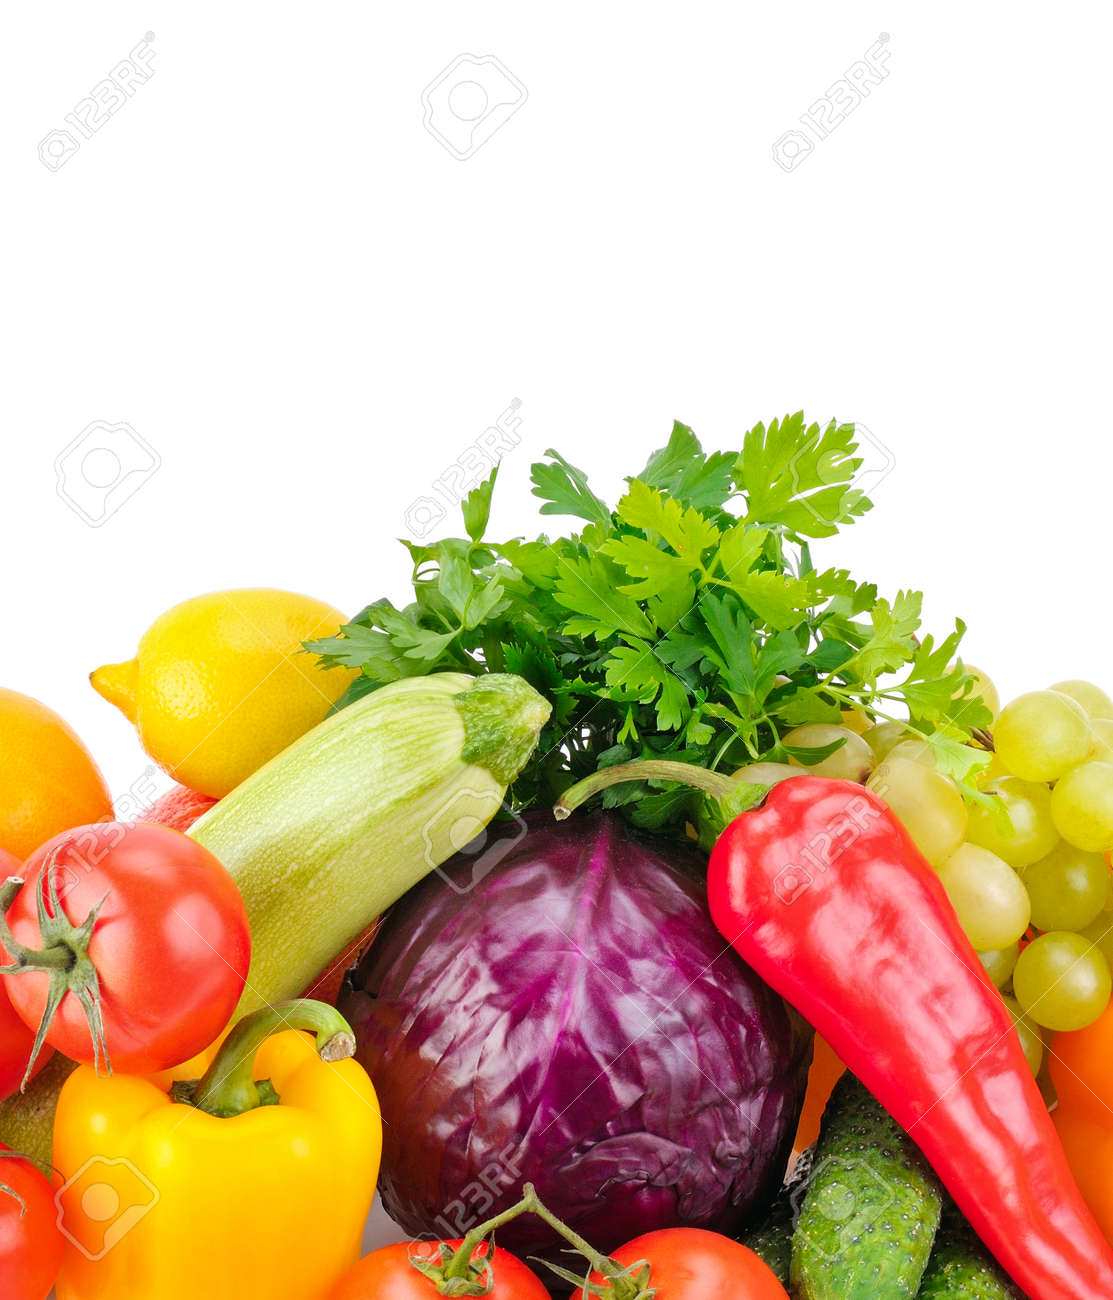 Fruits and vegetables isolated on a white - 136738517